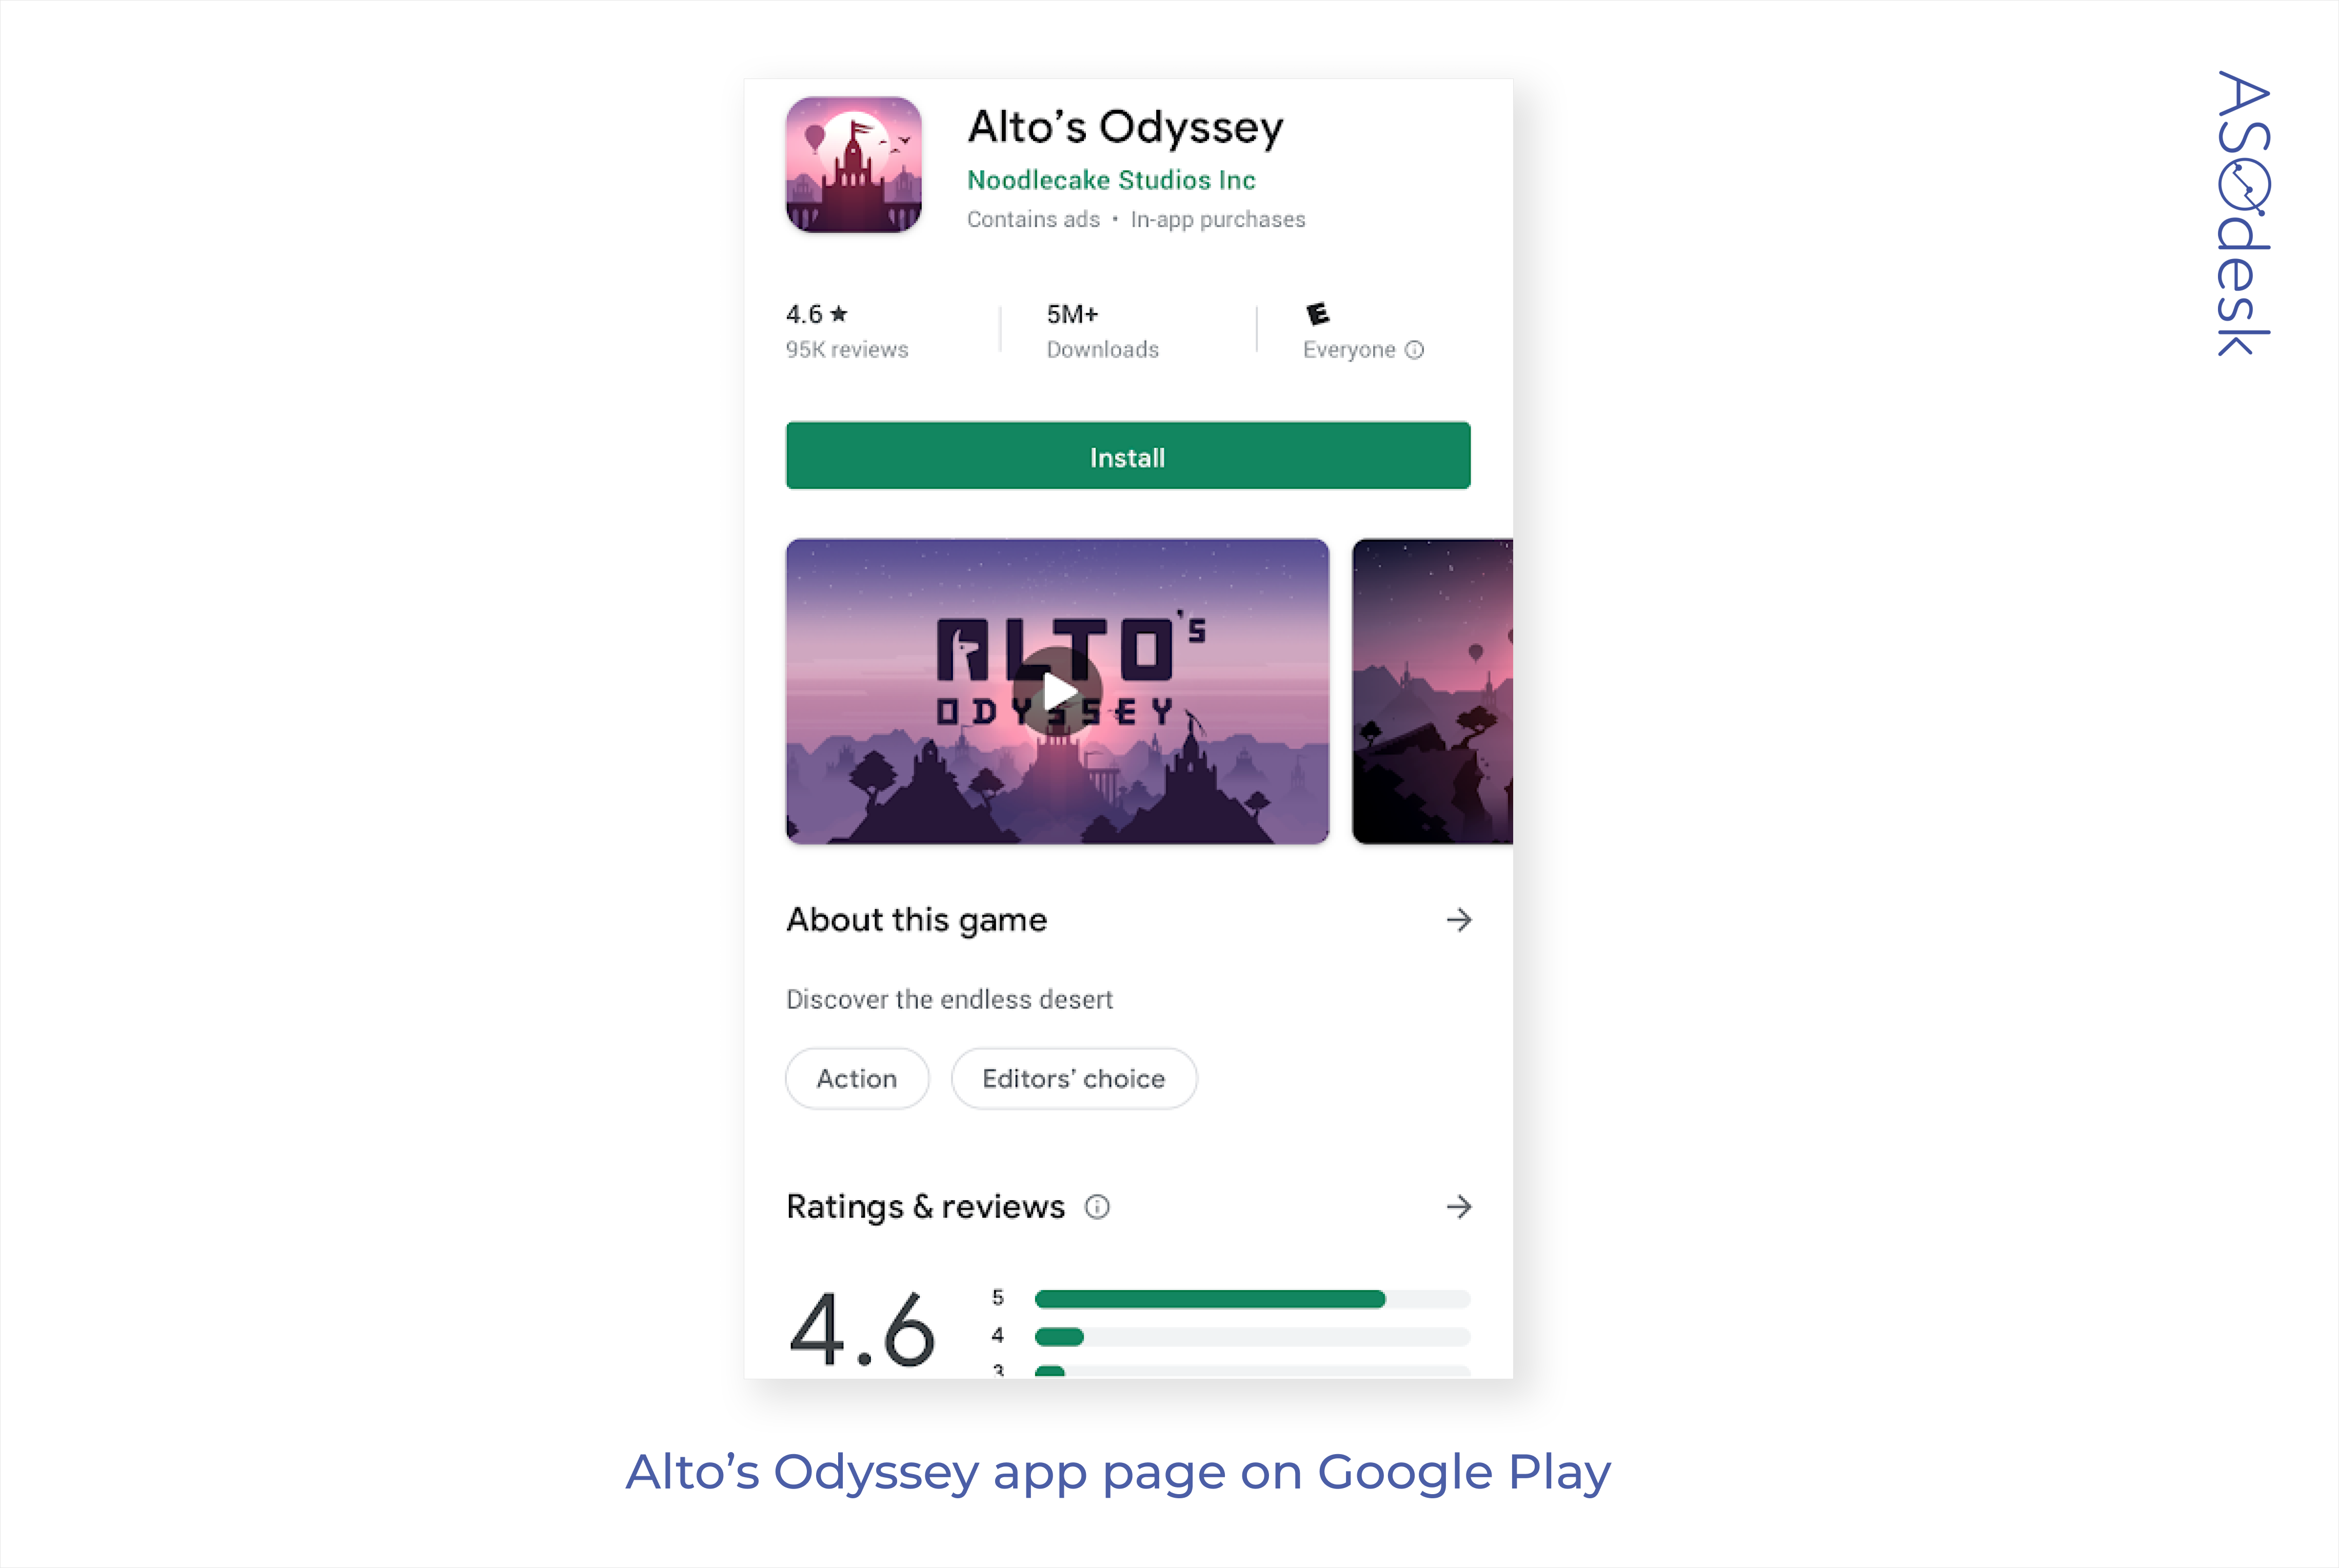 The app page example on Google Play